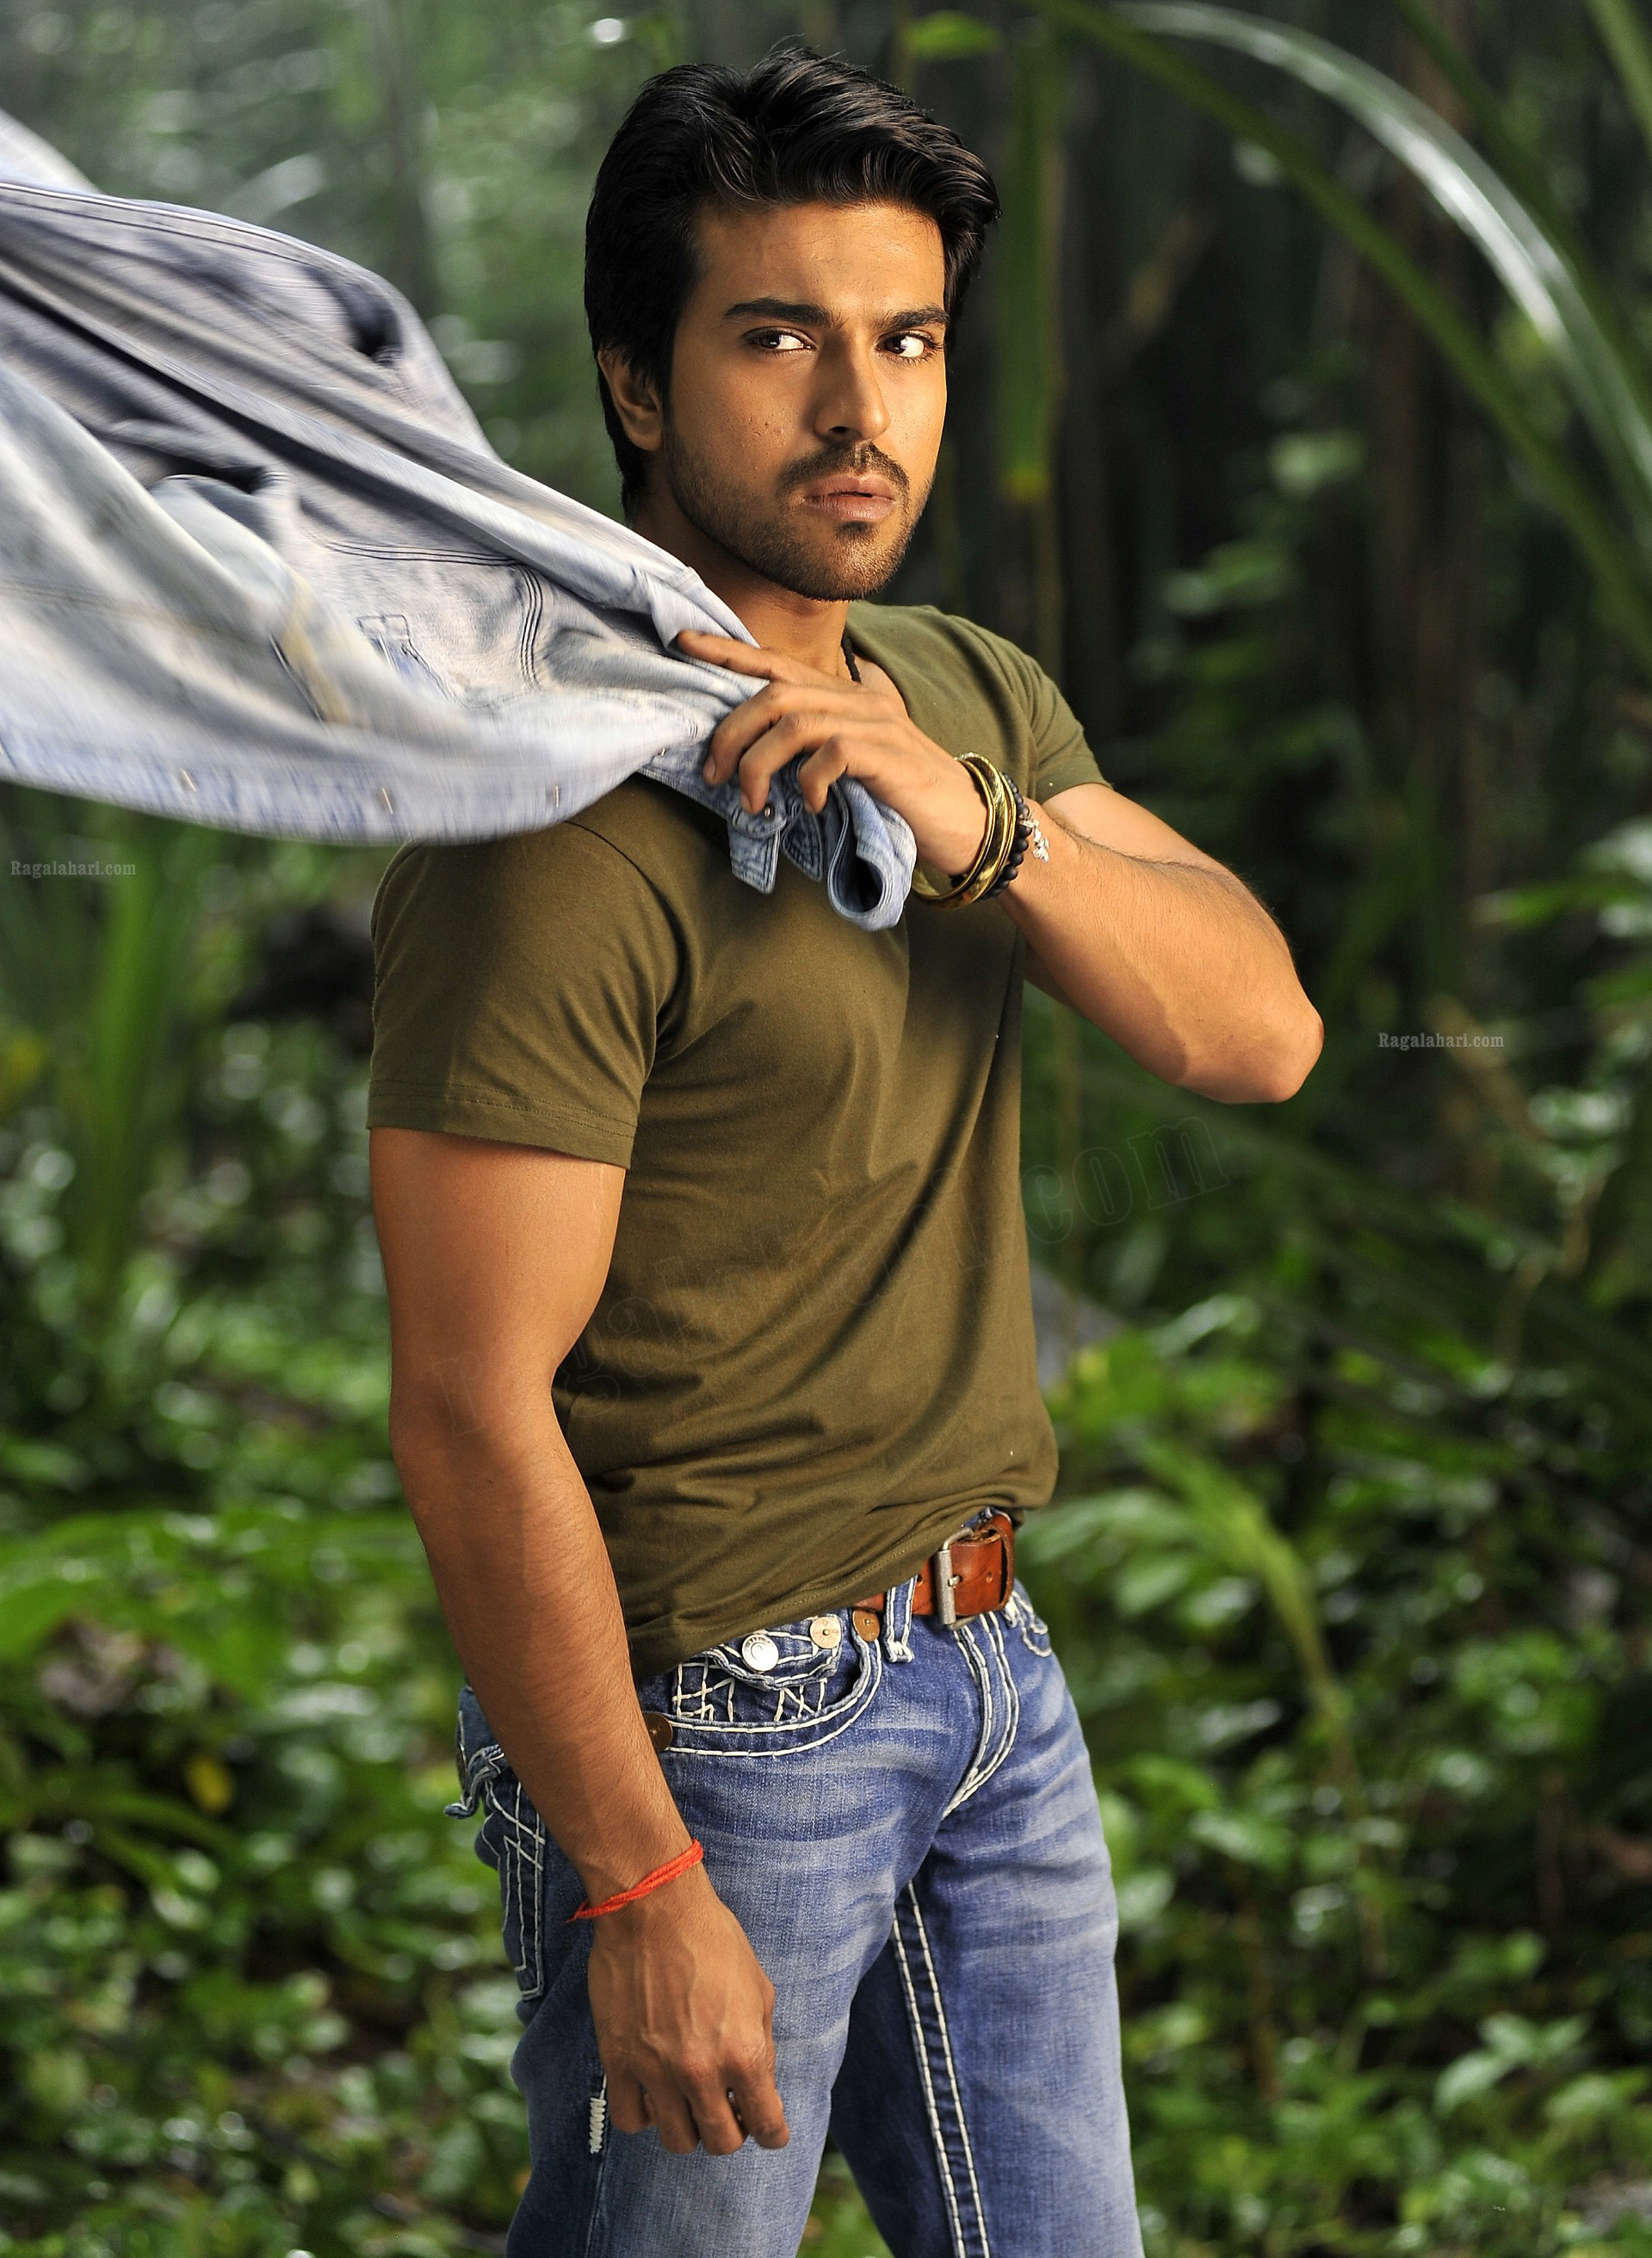 Ram charan Images Pics Wallpaper for Whatsapp